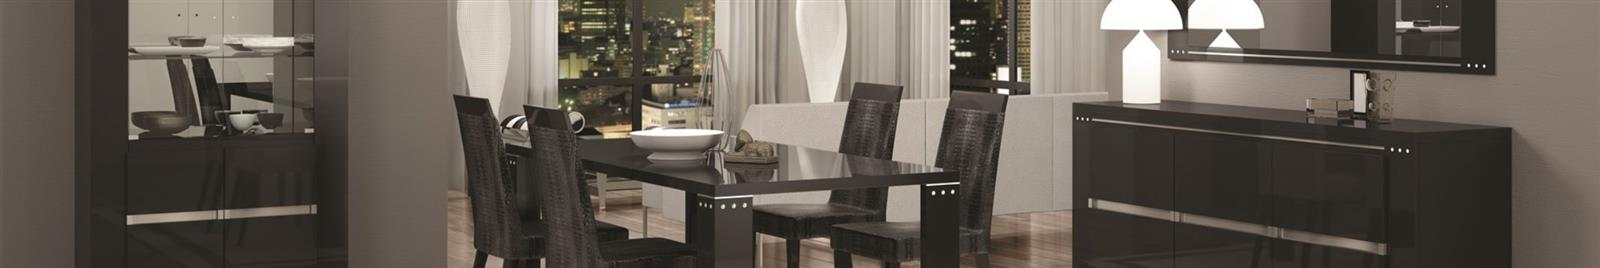 Armonia Diamond - Modern Italian Dining Furniture